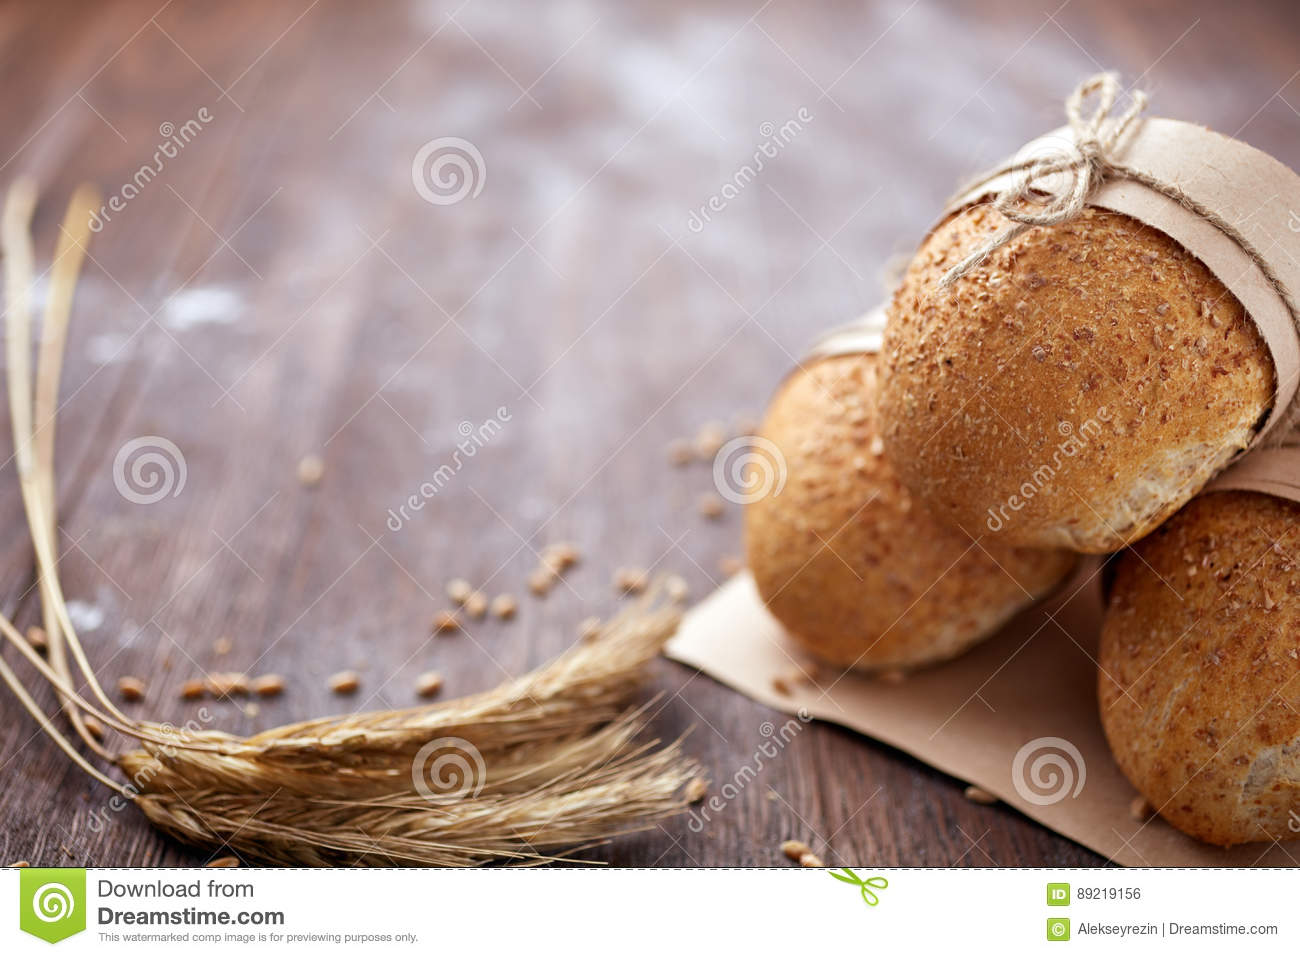 Bread loaf rustic selection of rye, soda, bloomer breads, with granary and oated rolls and ears of wheat.